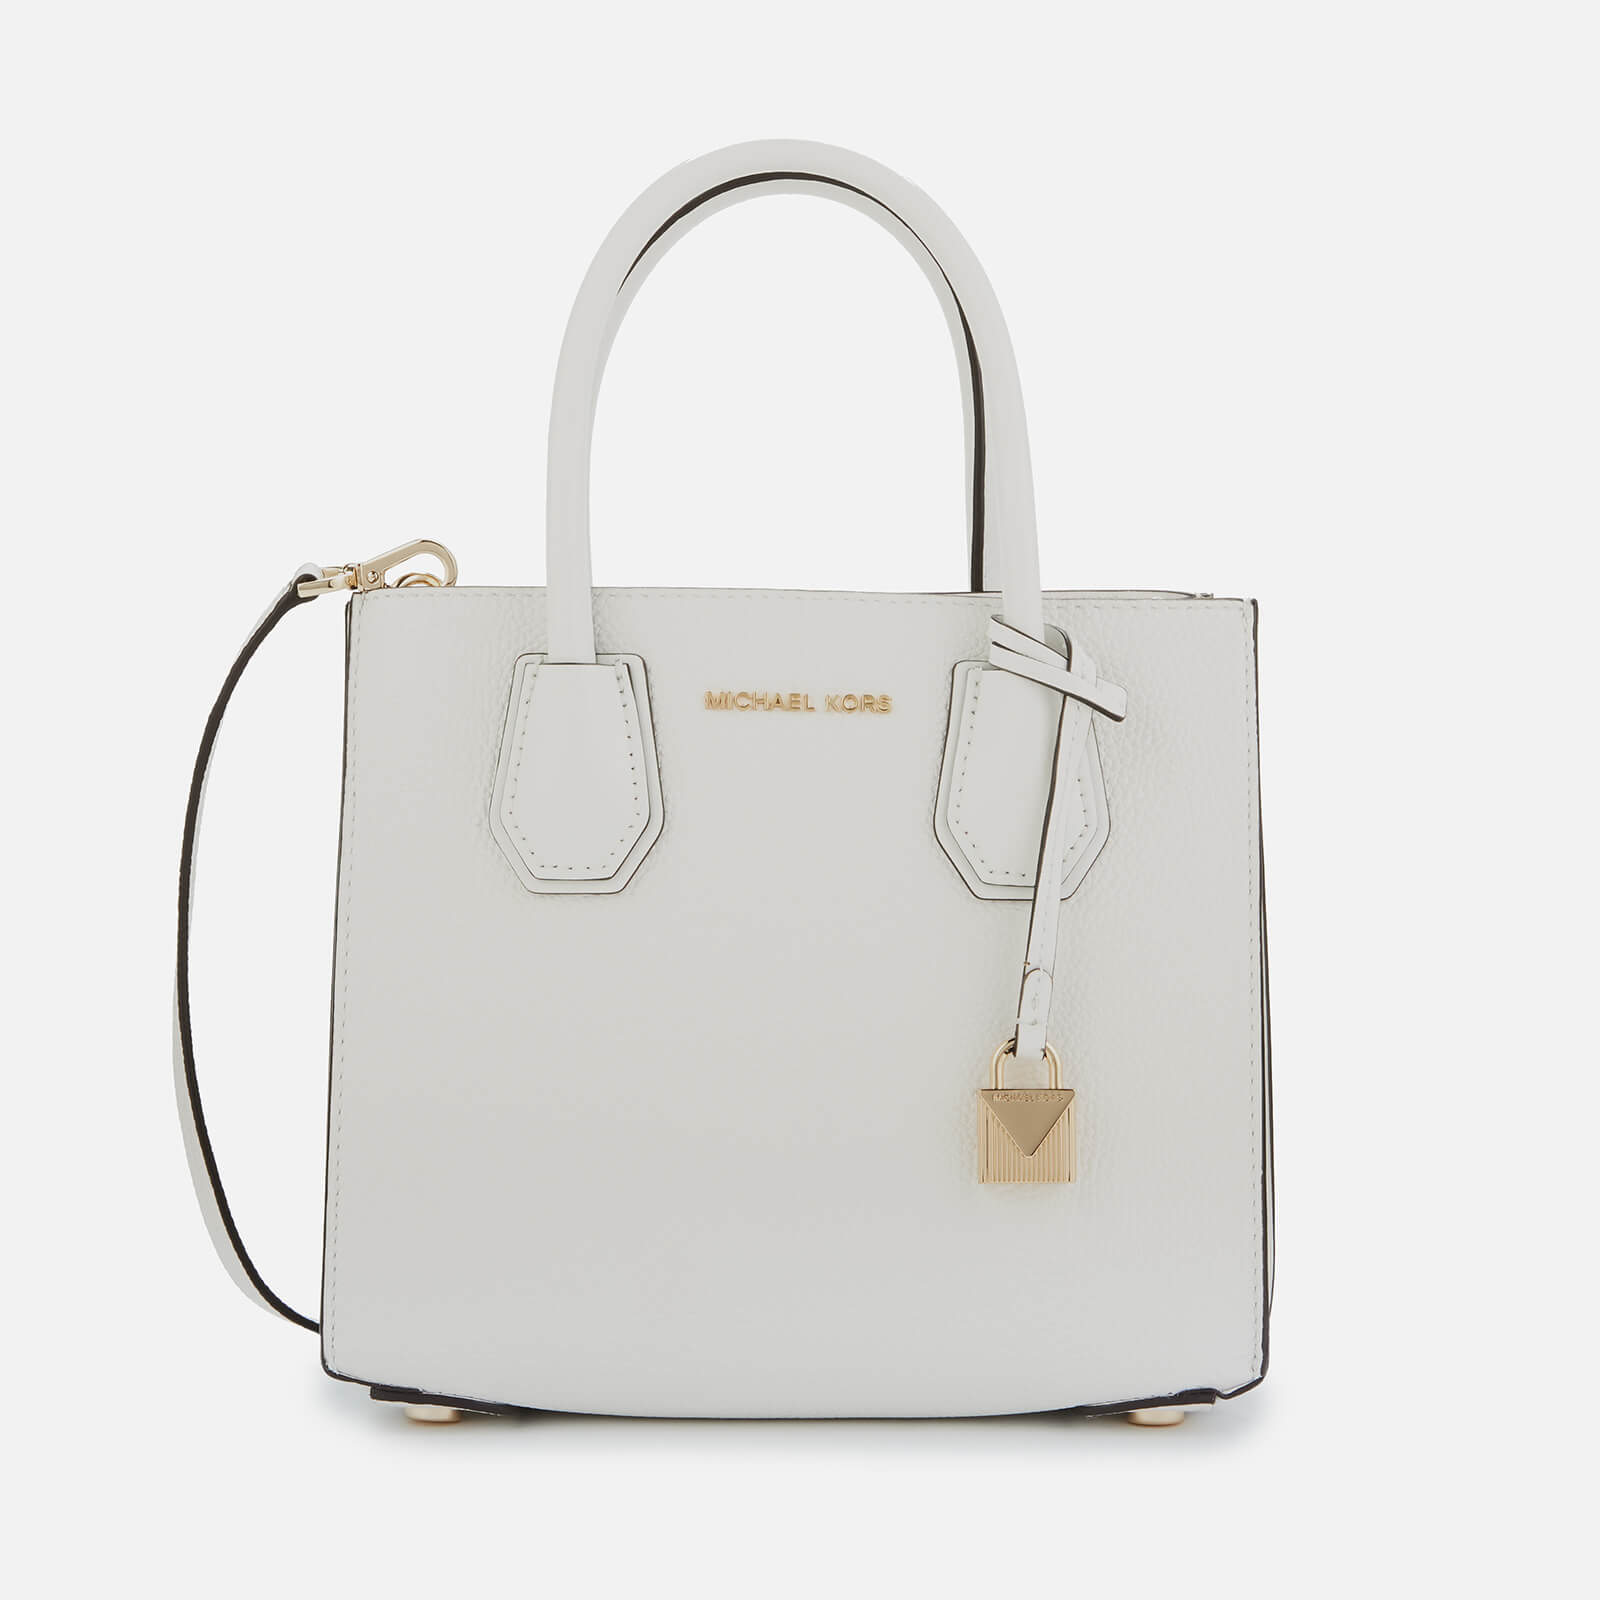 MICHAEL MICHAEL KORS Women's Mercer Medium Acordian Messenger Bag - Optic White